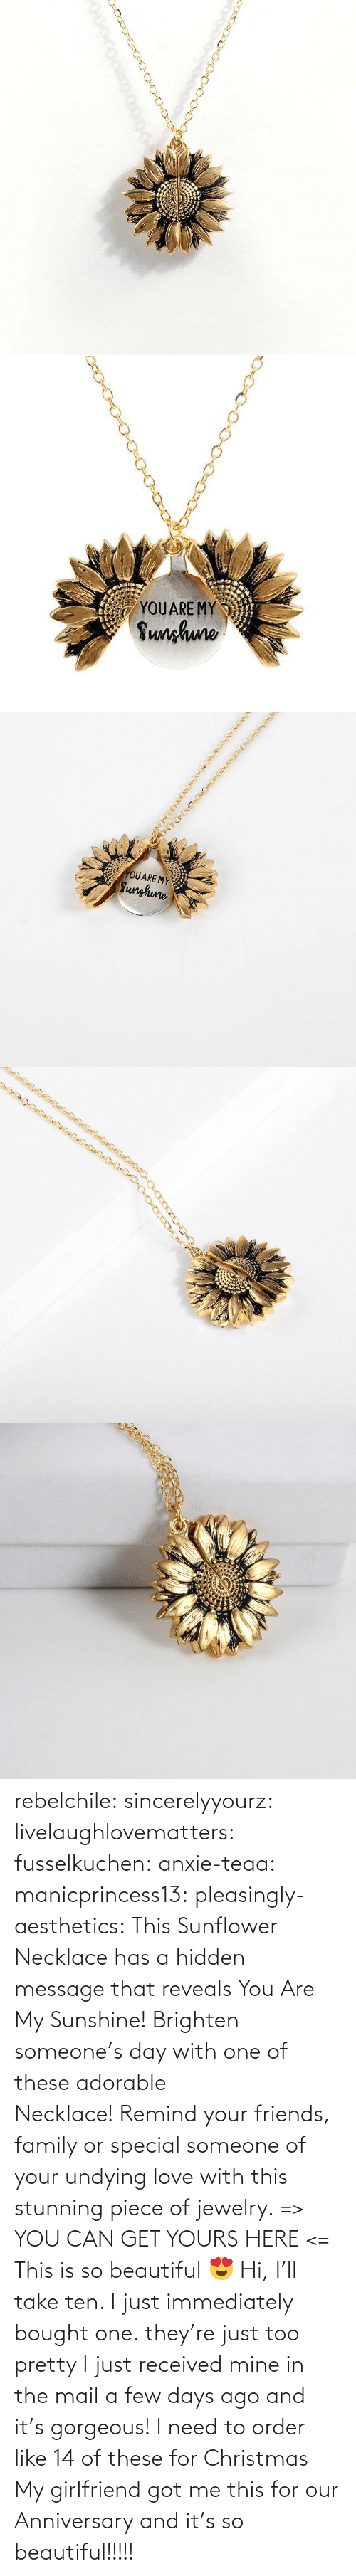 Hidden Message: rebelchile:  sincerelyyourz:  livelaughlovematters:  fusselkuchen:  anxie-teaa:   manicprincess13:   pleasingly-aesthetics:  This Sunflower Necklace has a hidden message that reveals You Are My Sunshine! Brighten someone's day with one of these adorable Necklace! Remind your friends, family or special someone of your undying love with this stunning piece of jewelry. => YOU CAN GET YOURS HERE <=   This is so beautiful 😍    Hi, I'll take ten.    I just immediately bought one. they're just too pretty   I just received mine in the mail a few days ago and it's gorgeous!   I need to order like 14 of these for Christmas    My girlfriend got me this for our Anniversary and it's so beautiful!!!!!